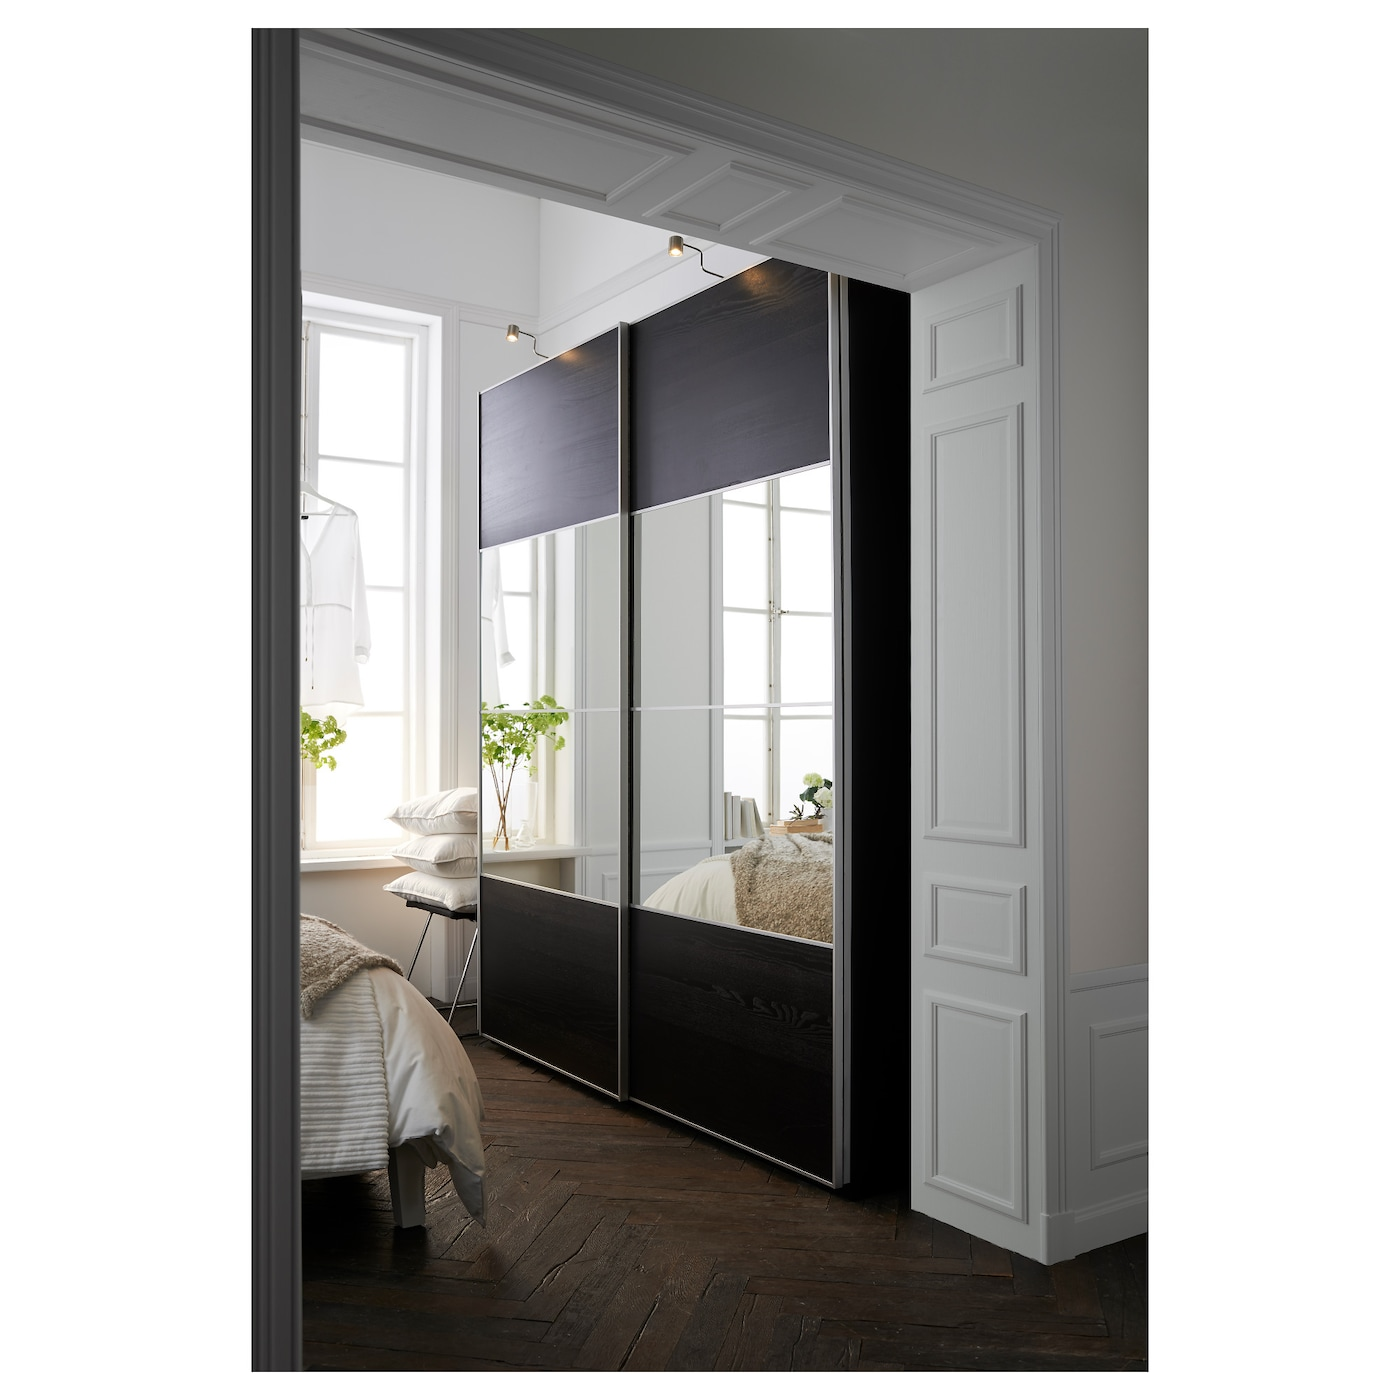 Pax wardrobe black brown auli ilseng 200x66x236 cm ikea for Armoire porte coulissante miroir ikea